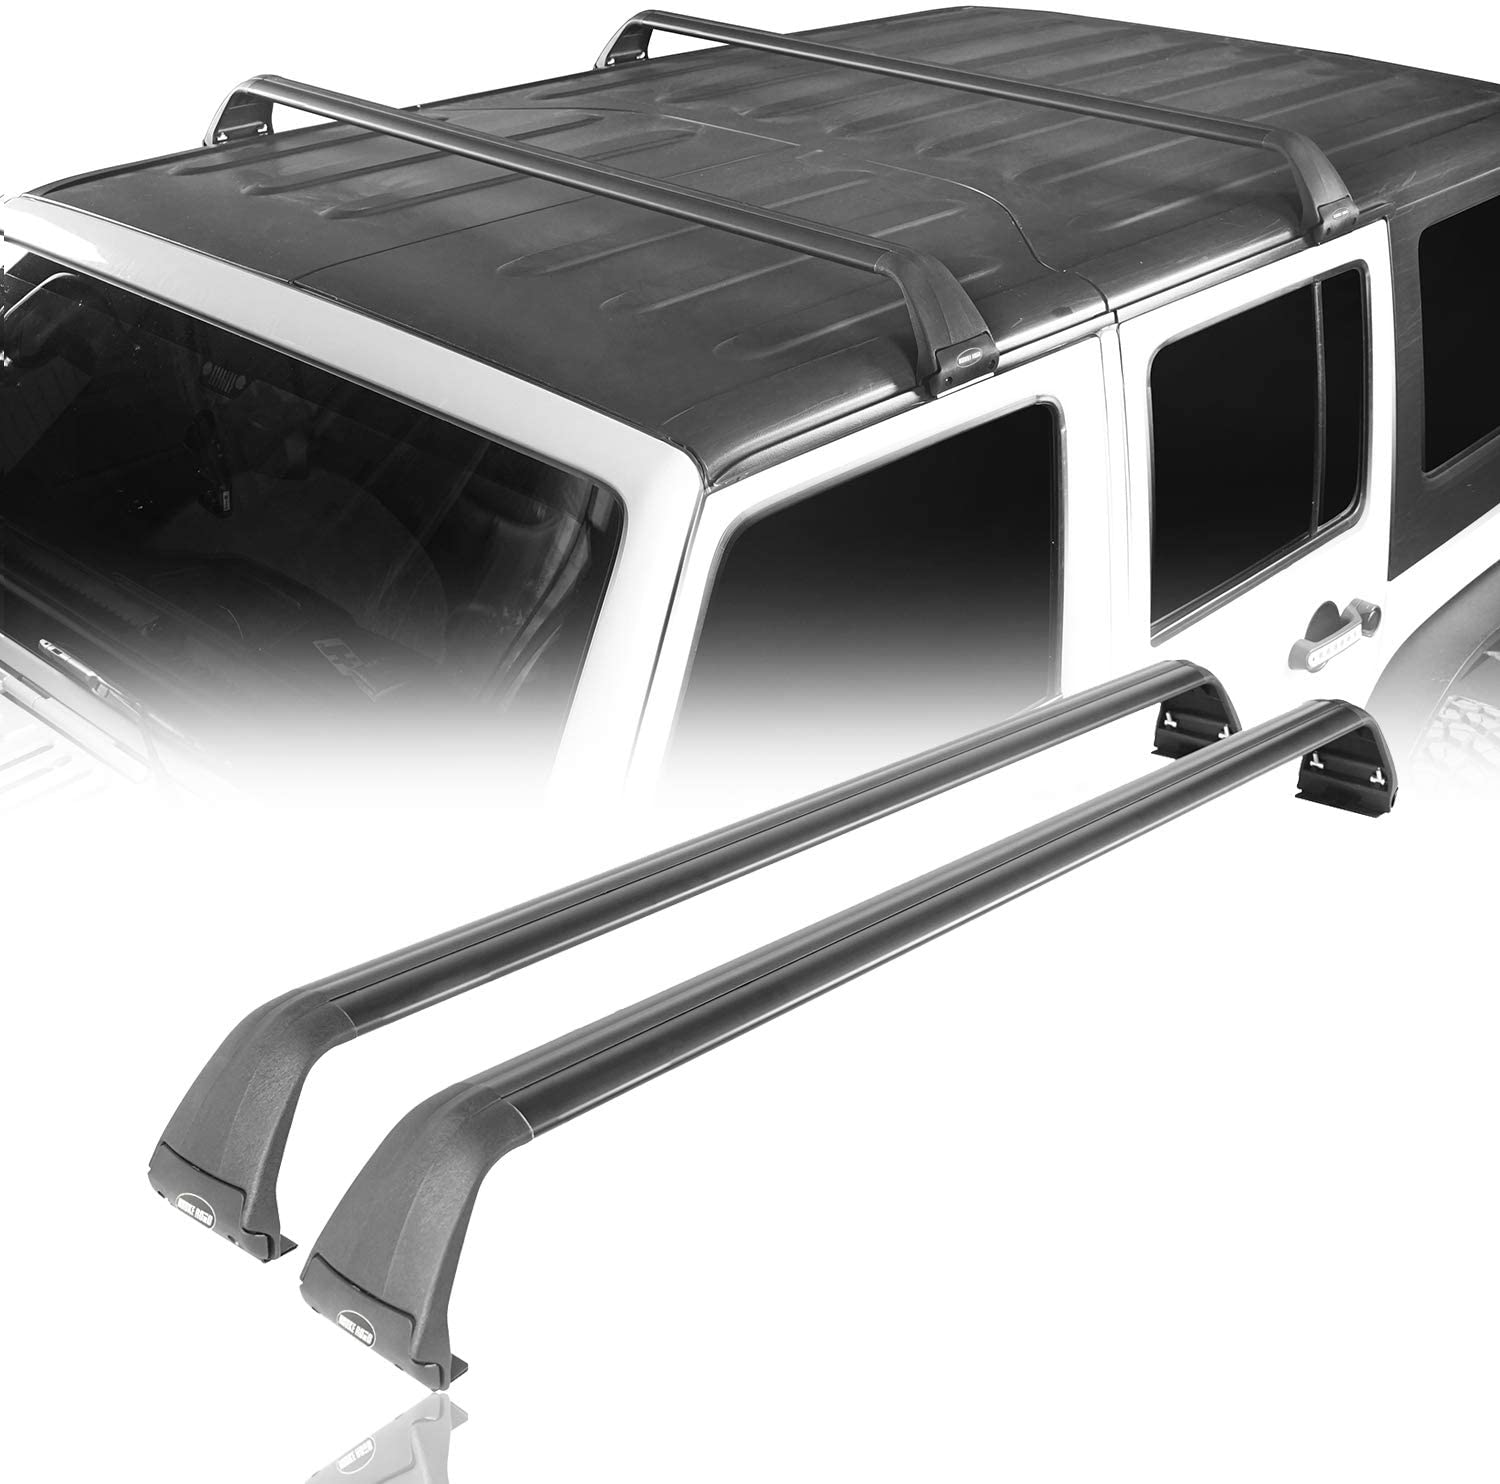 Roof Rack 2 Crossbars For Jeep Wrangler 2007 2020 Jk Jl Offgrid Store